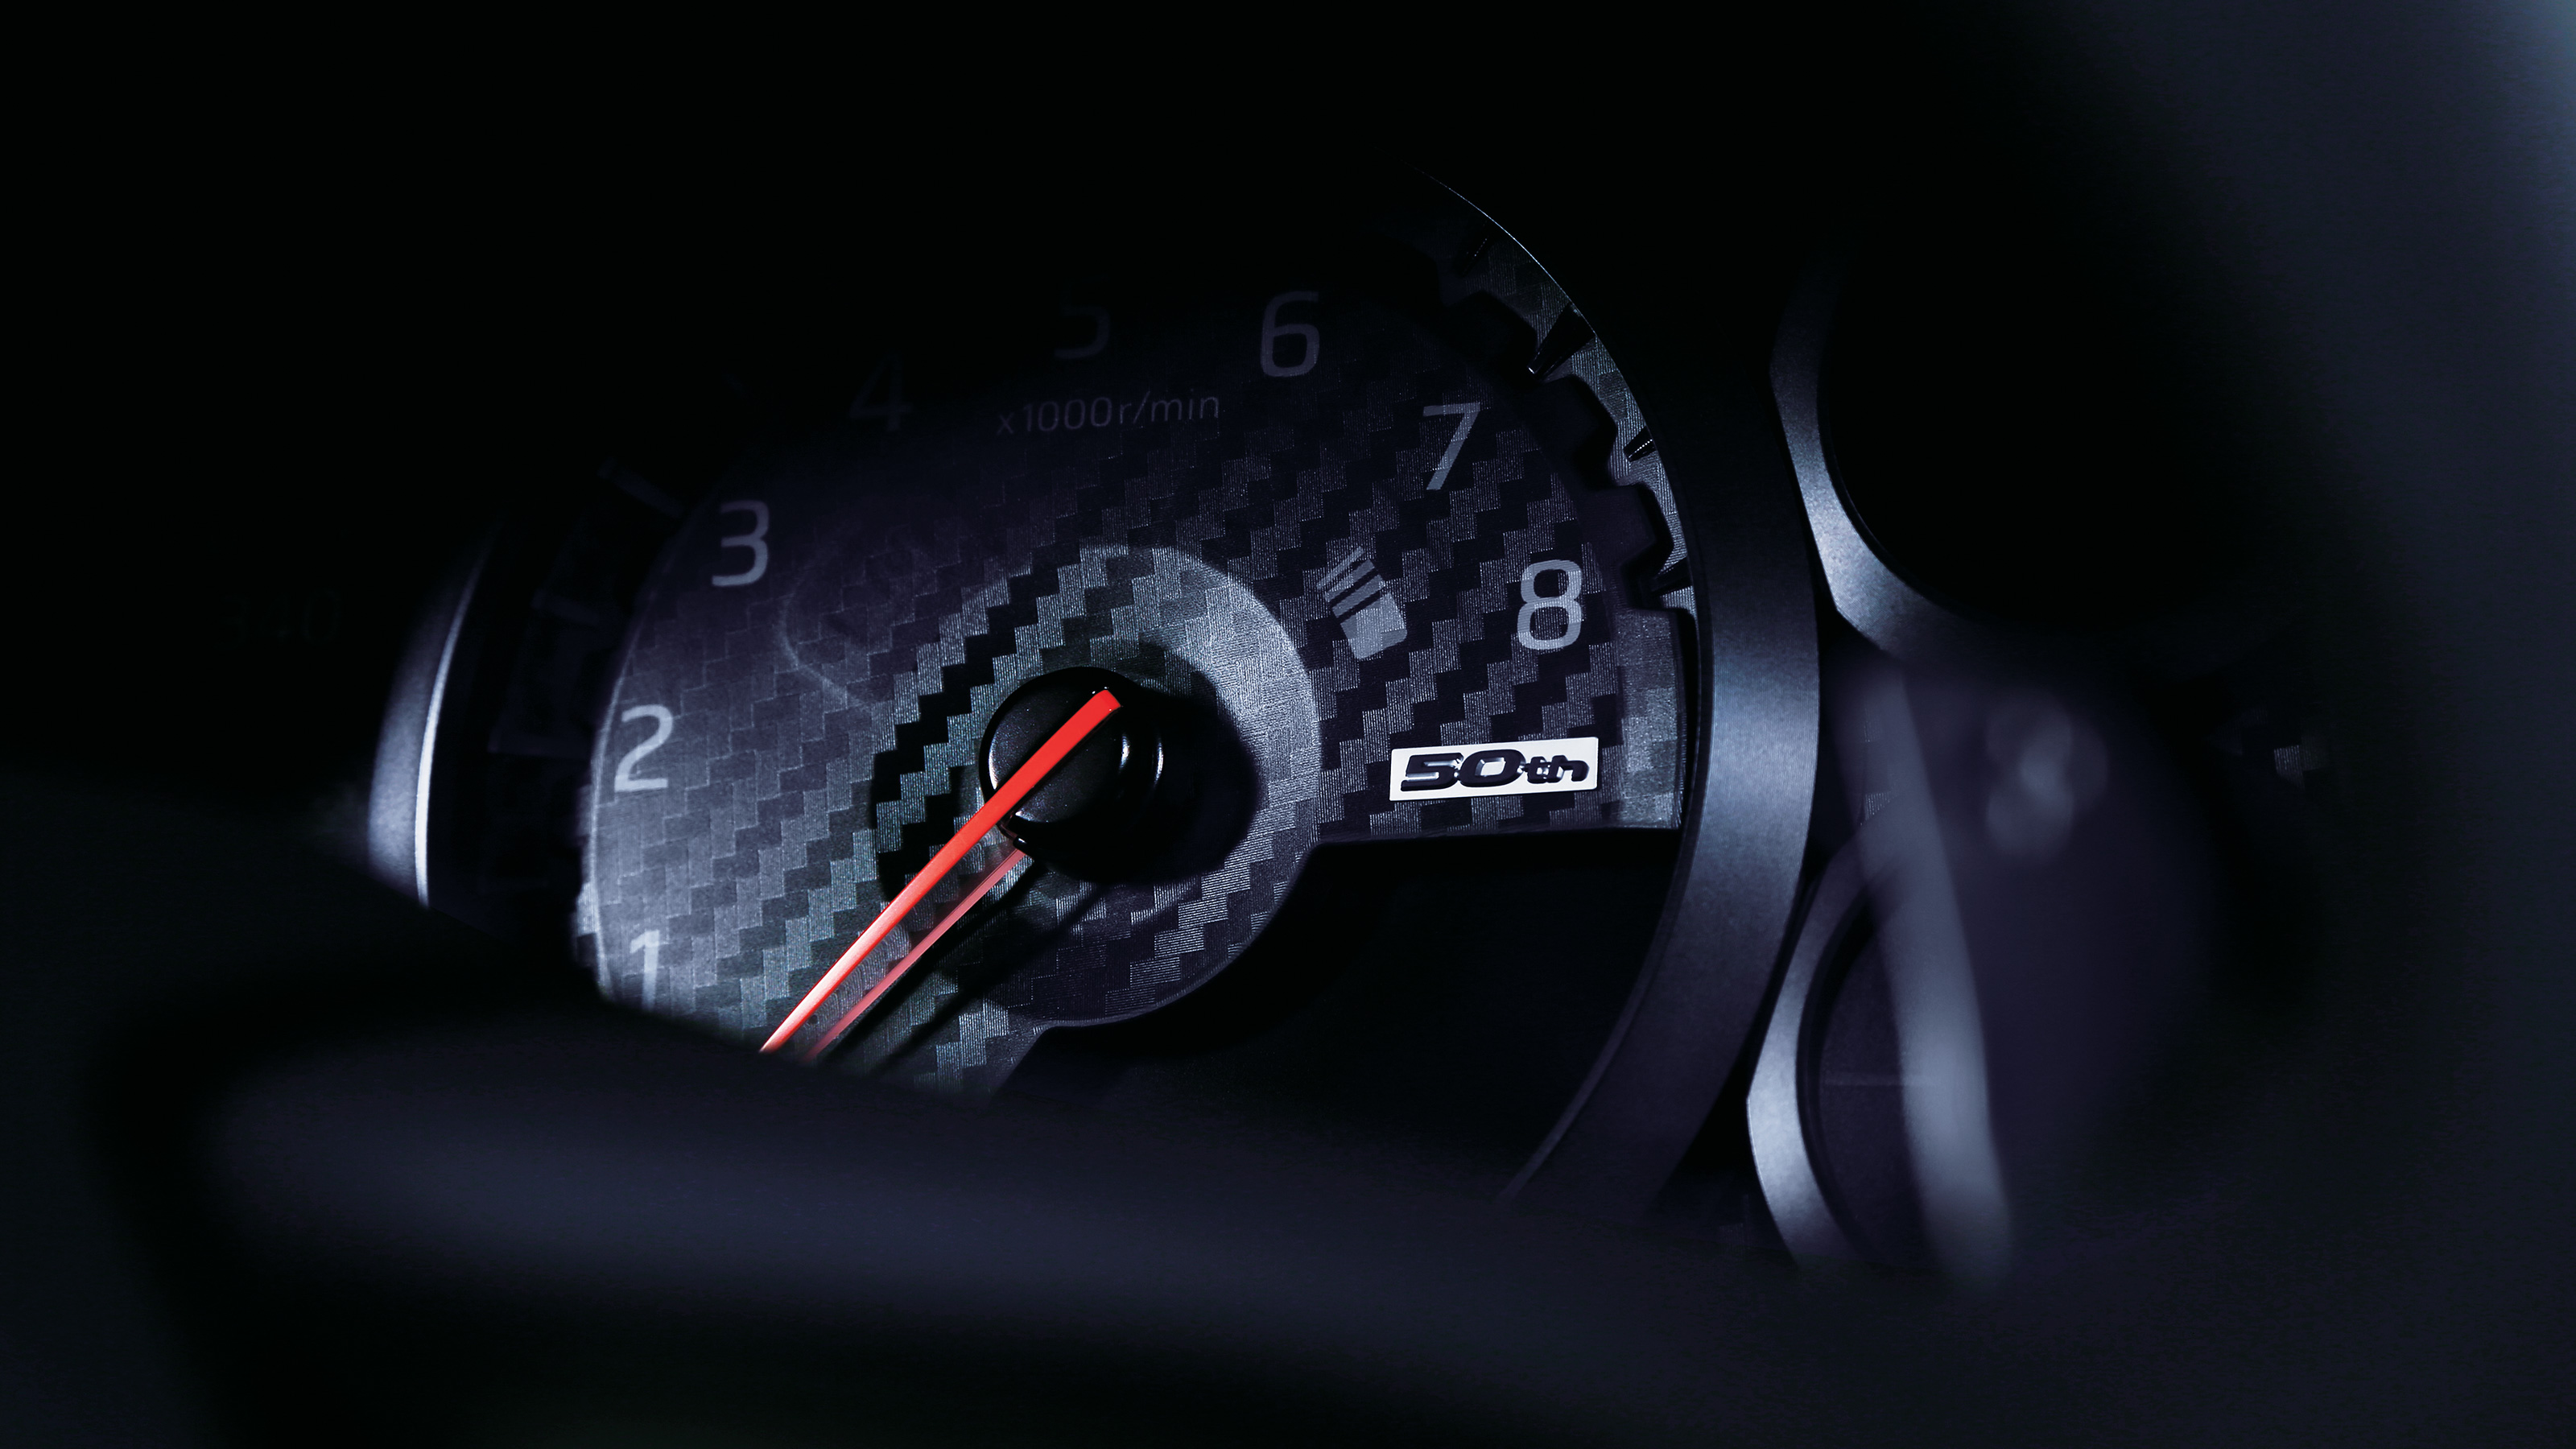 Nissan GT-R 50th Anniversary logo in gauge cluster